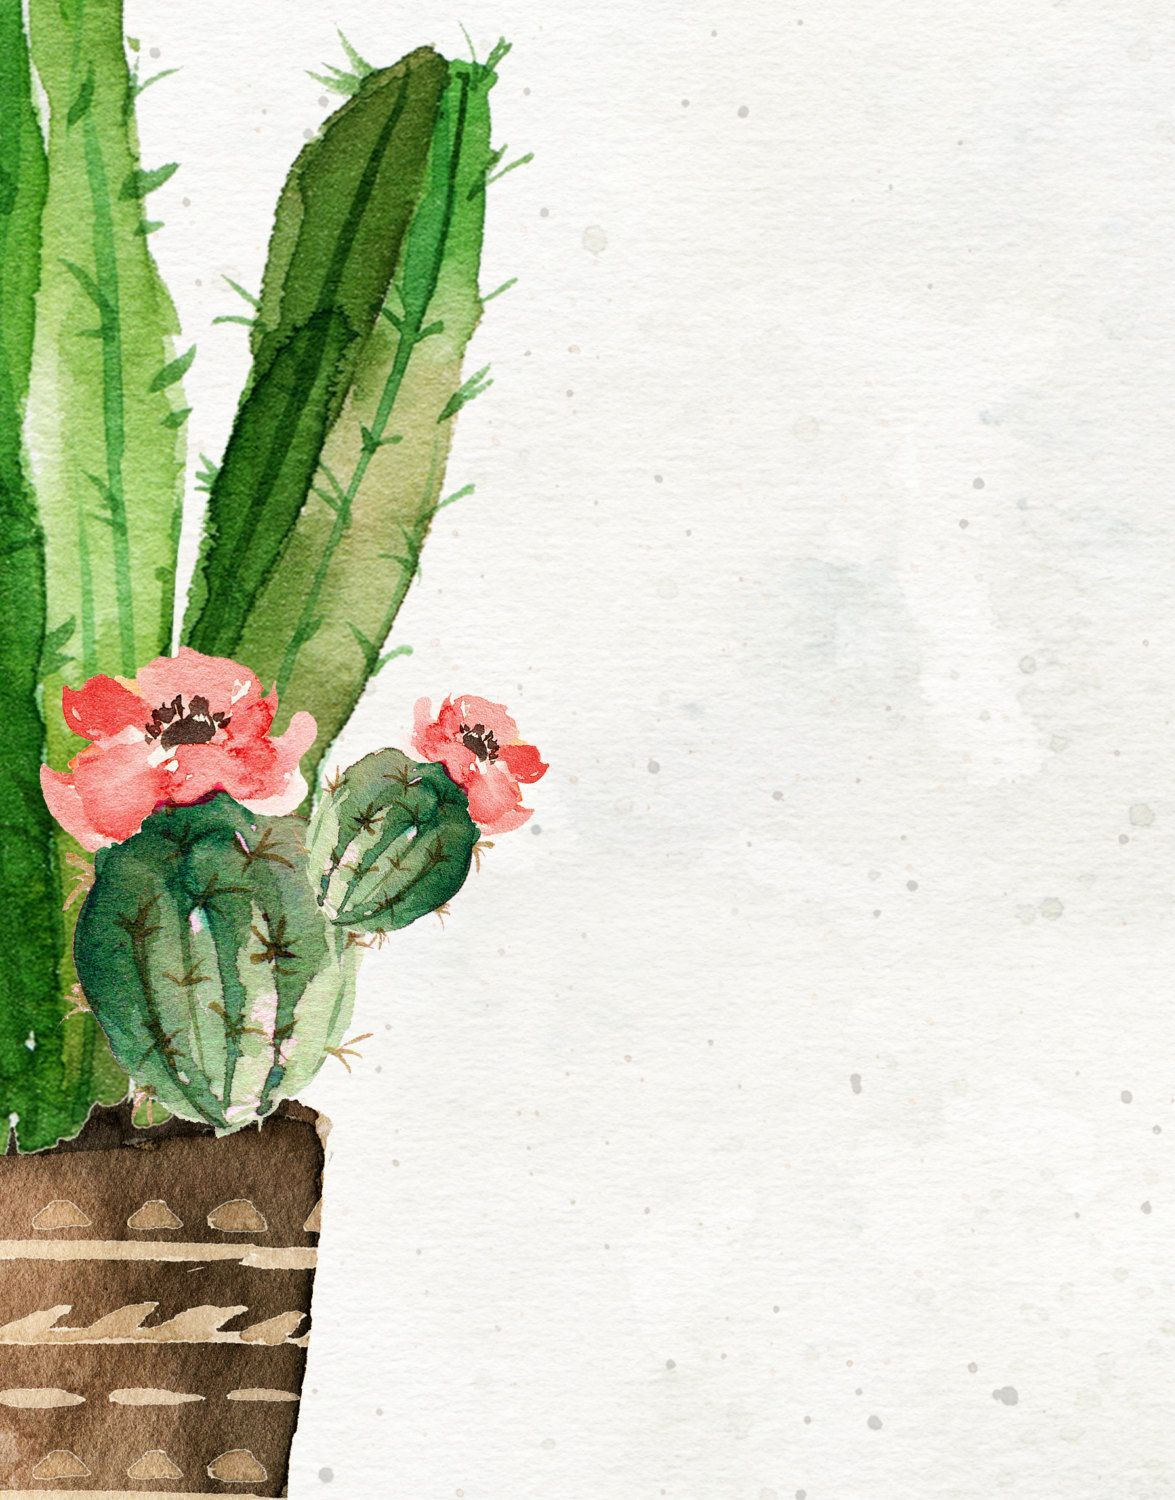 Boho Cactus print - Cactus wall art - Cottage chic - Rustic art print- Printable art gift - Cacti print - Watercolor cactus - Digital prints -  Best Picture For  Cactus types  For Your Taste You are looking for something, and it is going to te - #Art #Boho #cacti #cactus #Cactusart #Cactusgarden #Cactusindoor #Cactusplants #chic #cottage #Digital #gift #print #printable #prints #rustic #Wall #watercolor